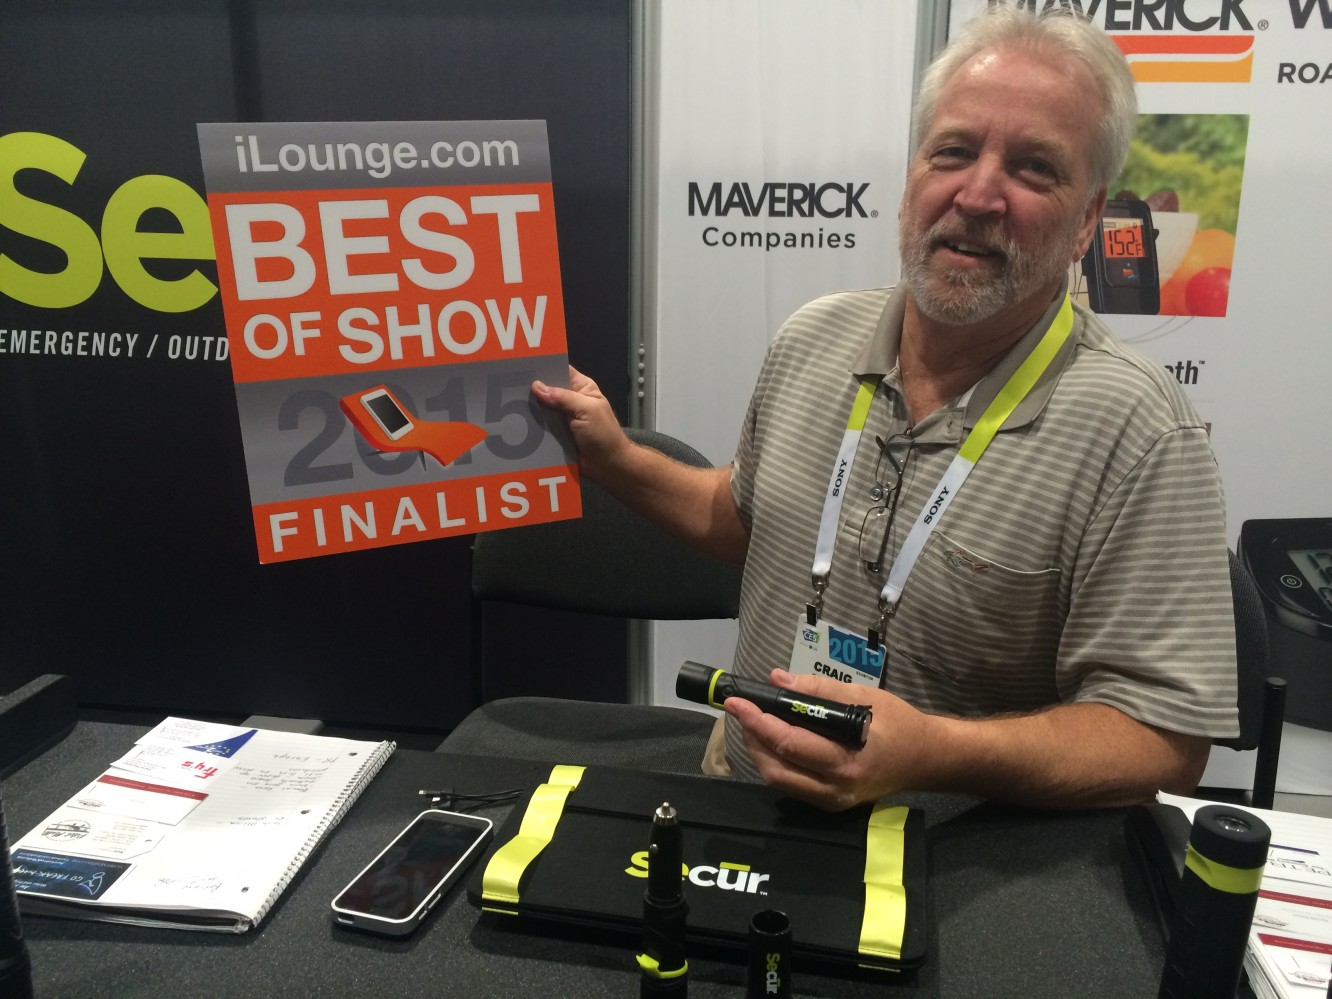 iLounge announces its CES 2015 Best of Show Awards 13